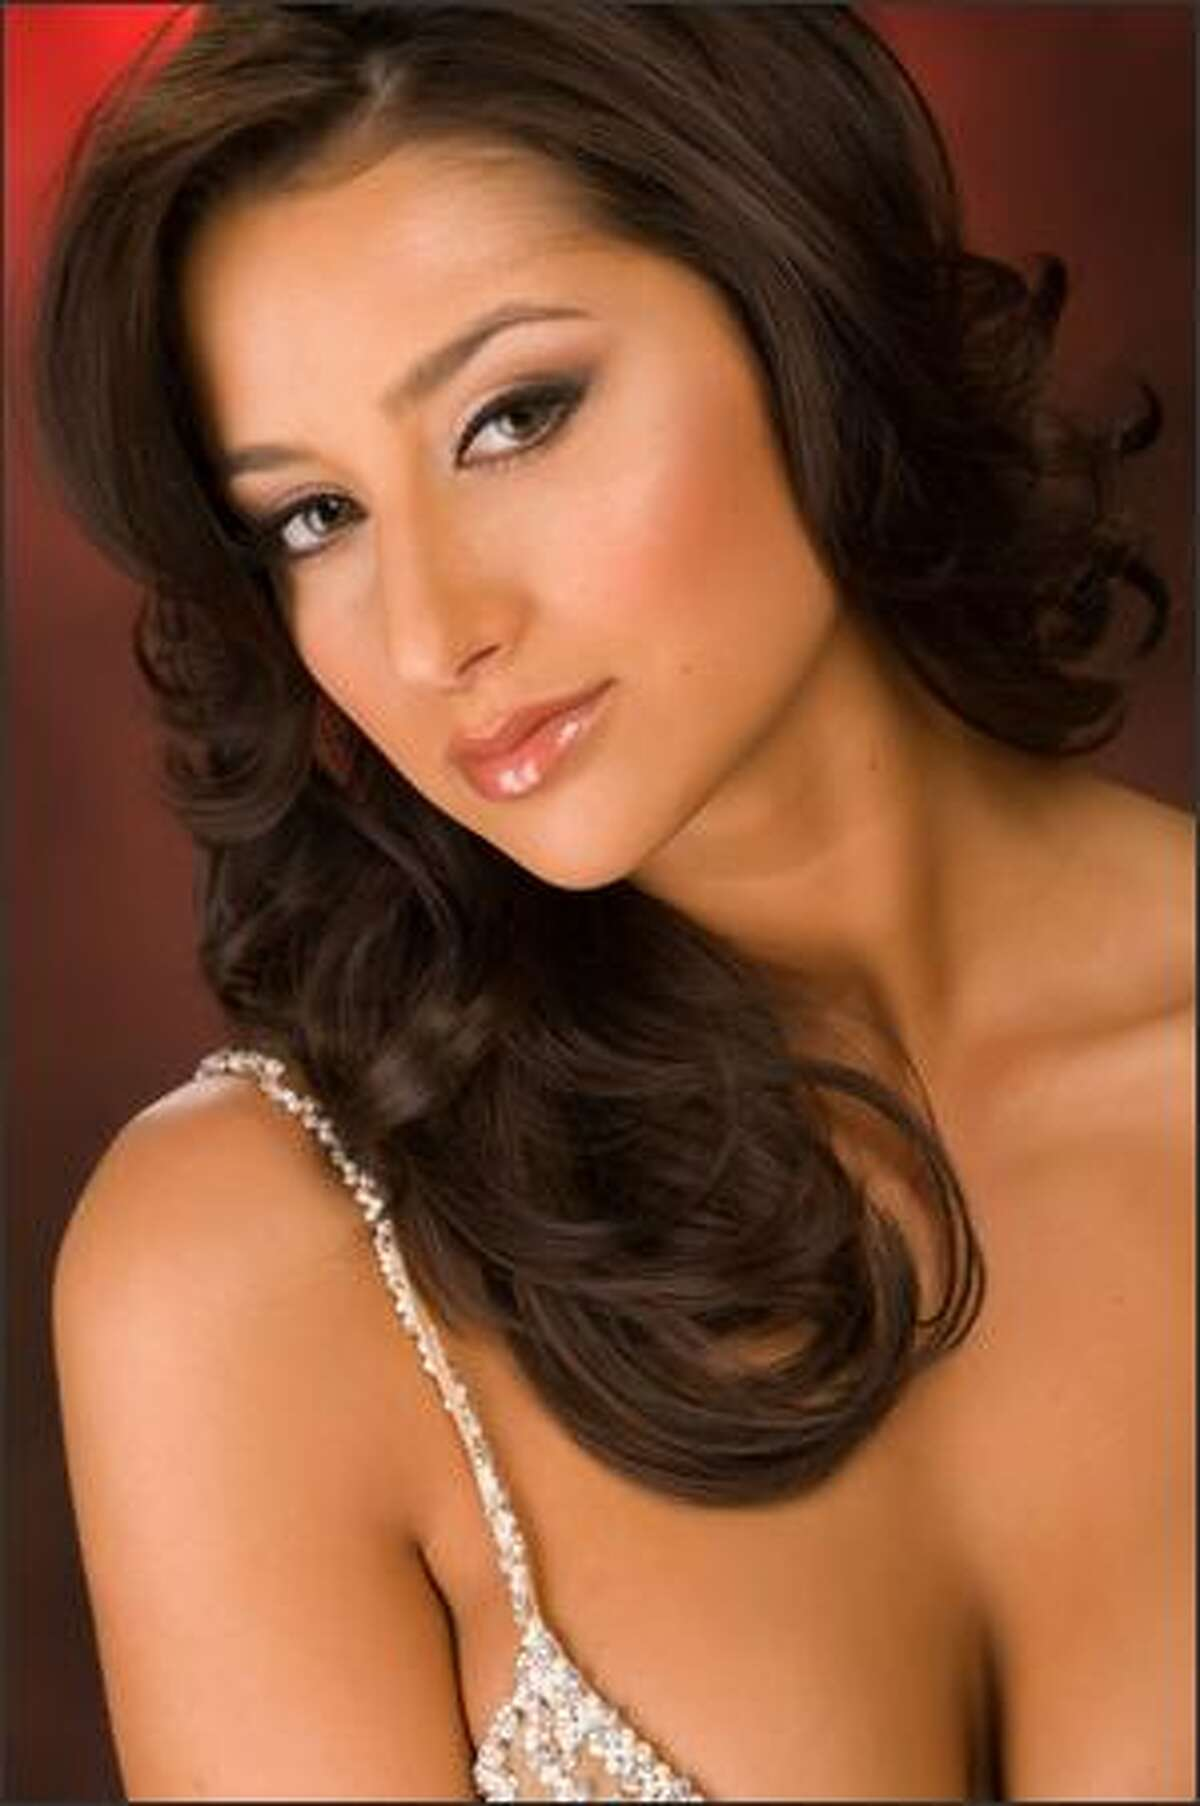 Rachel Philippona, Miss Alabama, poses for a portrait during registration and fittings for the Miss USA competition at the Planet Hollywood Resort and Casino in Las Vegas on April 4. The winner will be crowned April 19. The Miss Universe Organization, which operates the Miss USA pageant, advises that these portraits are retouched.